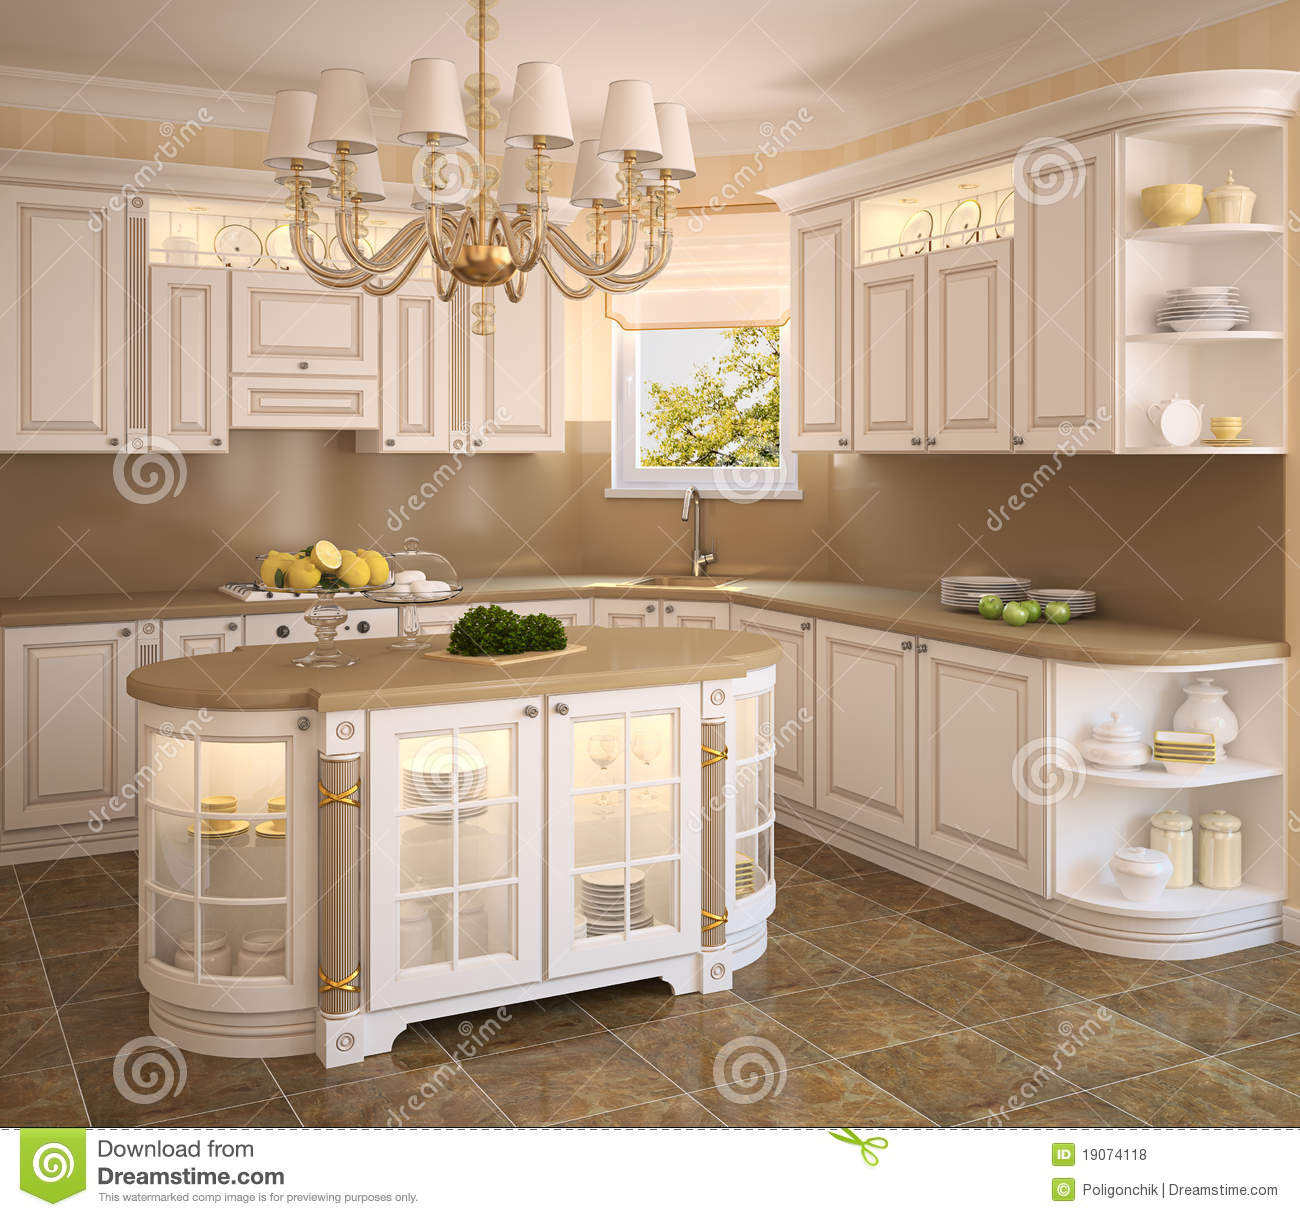 Traditional White Kitchen Design 3d Rendering: Classic White Kitchen. Stock Illustration. Illustration Of